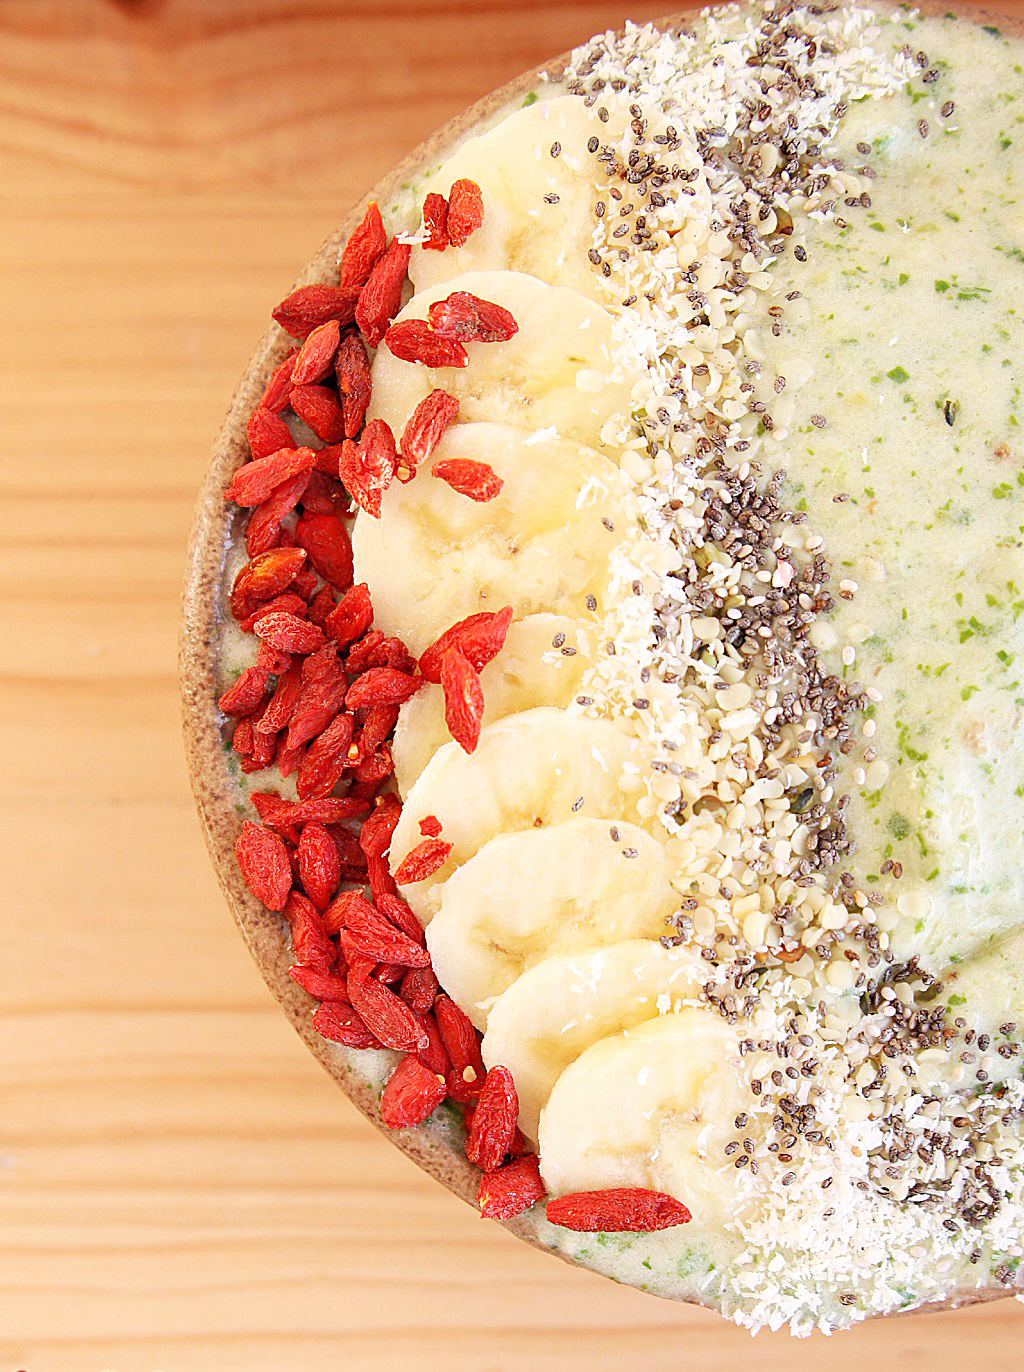 - Blend: 1 Banana, 1 Kiwi, 1 Apple (All frozen) with water, 2 tablespoons Wazoogles and 15ml Omega 3 Vegan Oil BlendTop with: Banana, Goji Berries, Chia Seeds and Coconut Shavings.